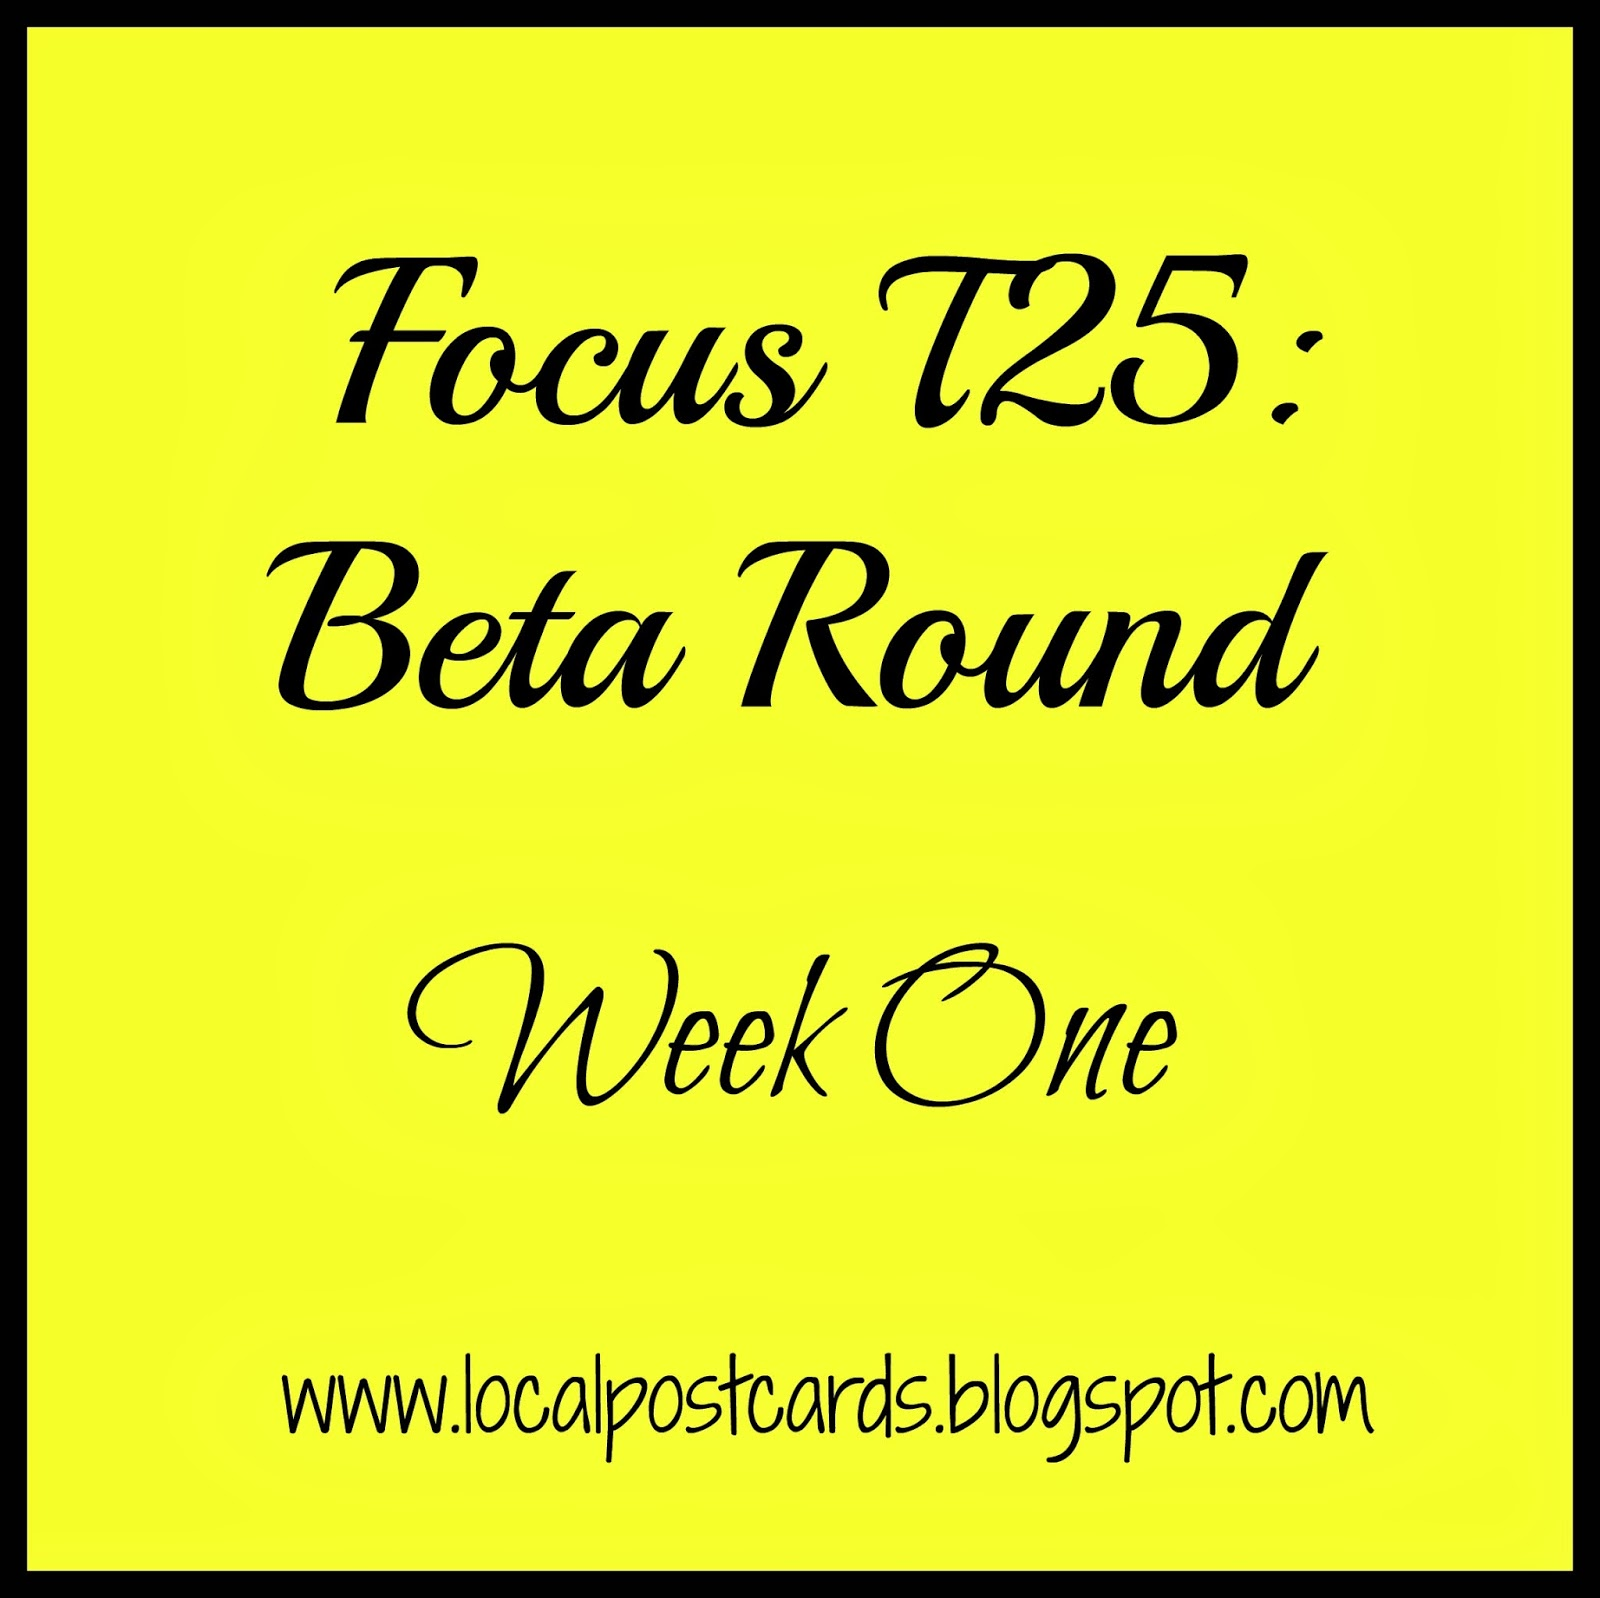 Focus T25 Beta Round Week One